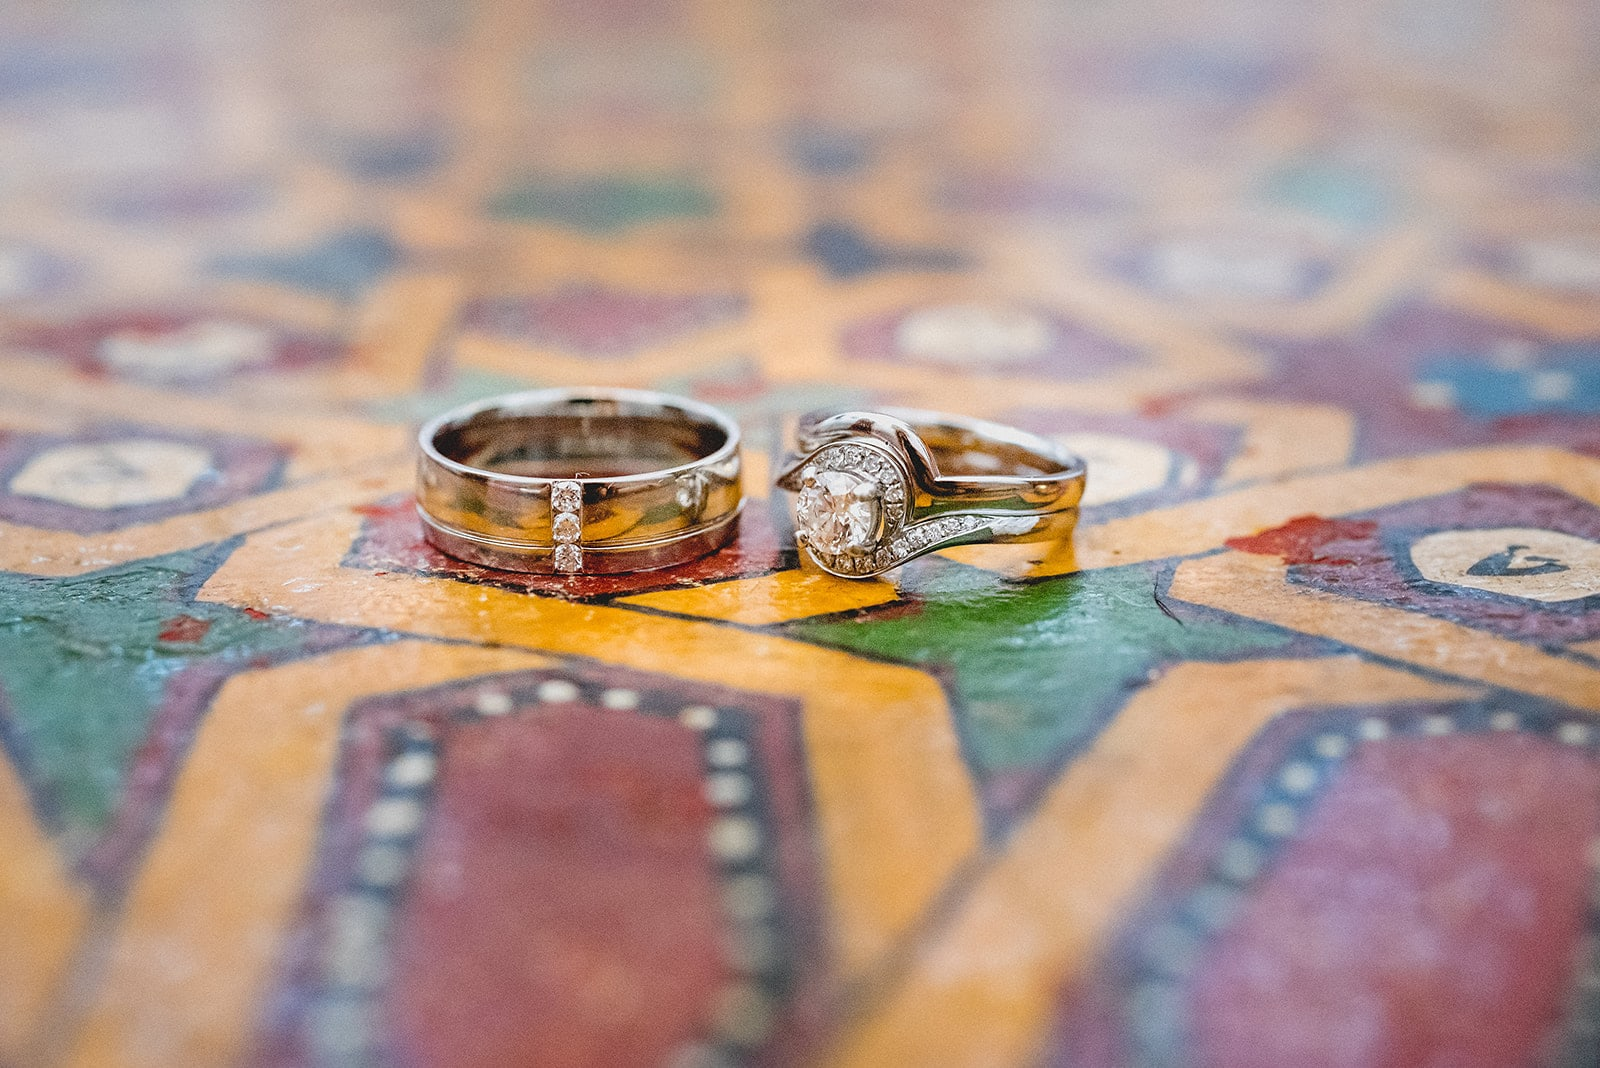 Wedding rings lying on colourful Moroccan pattern